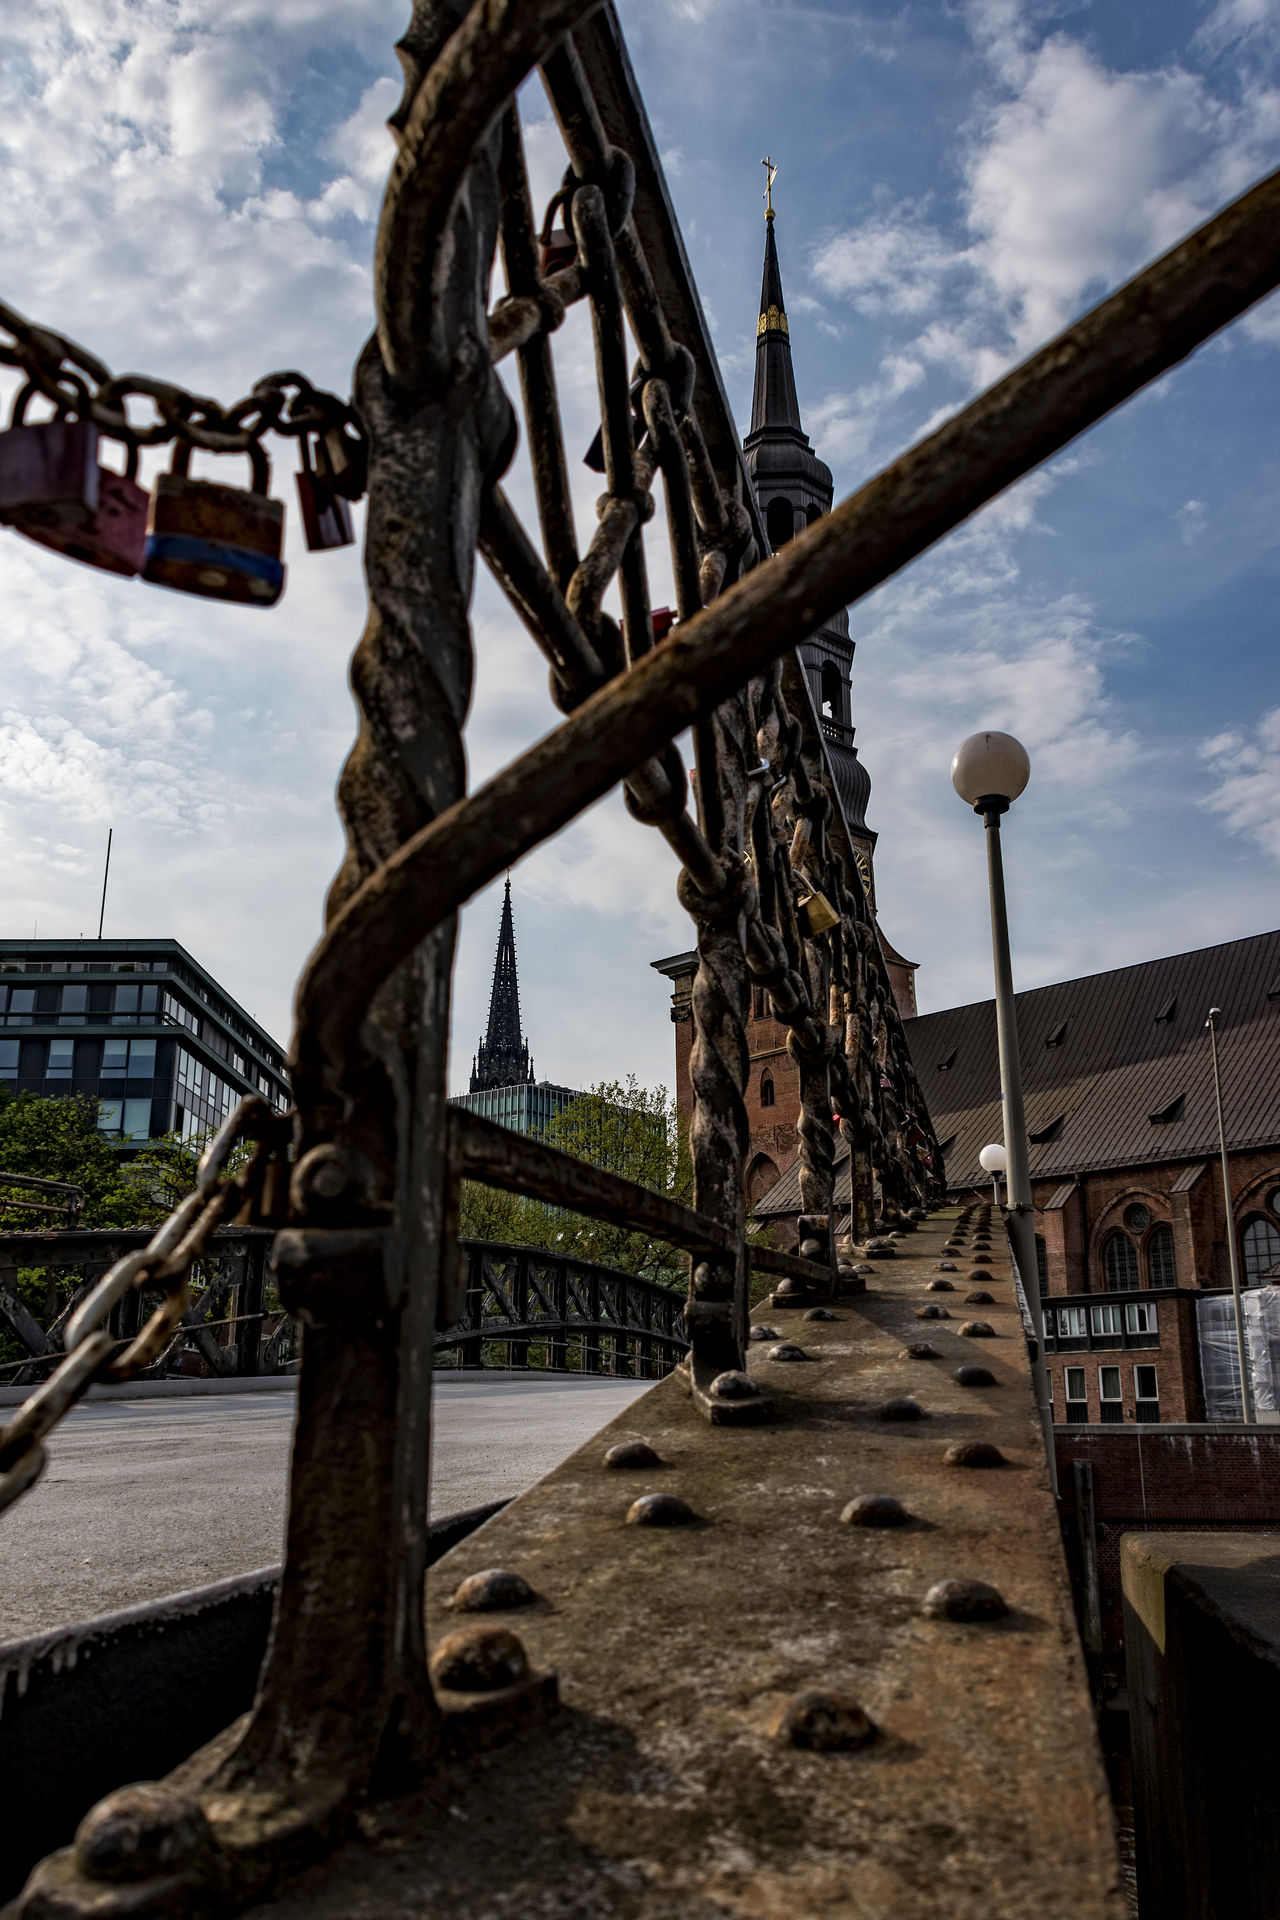 Jungfernbrücke Architecture Bridge Building Exterior Built Structure Church Church Tower City Cloud - Sky Day Hamburg Harbour Iron - Metal Jungfernbrücke Lantern Nature No People Outdoors Padlocks Railing Sky Speicherstadt Hamburg